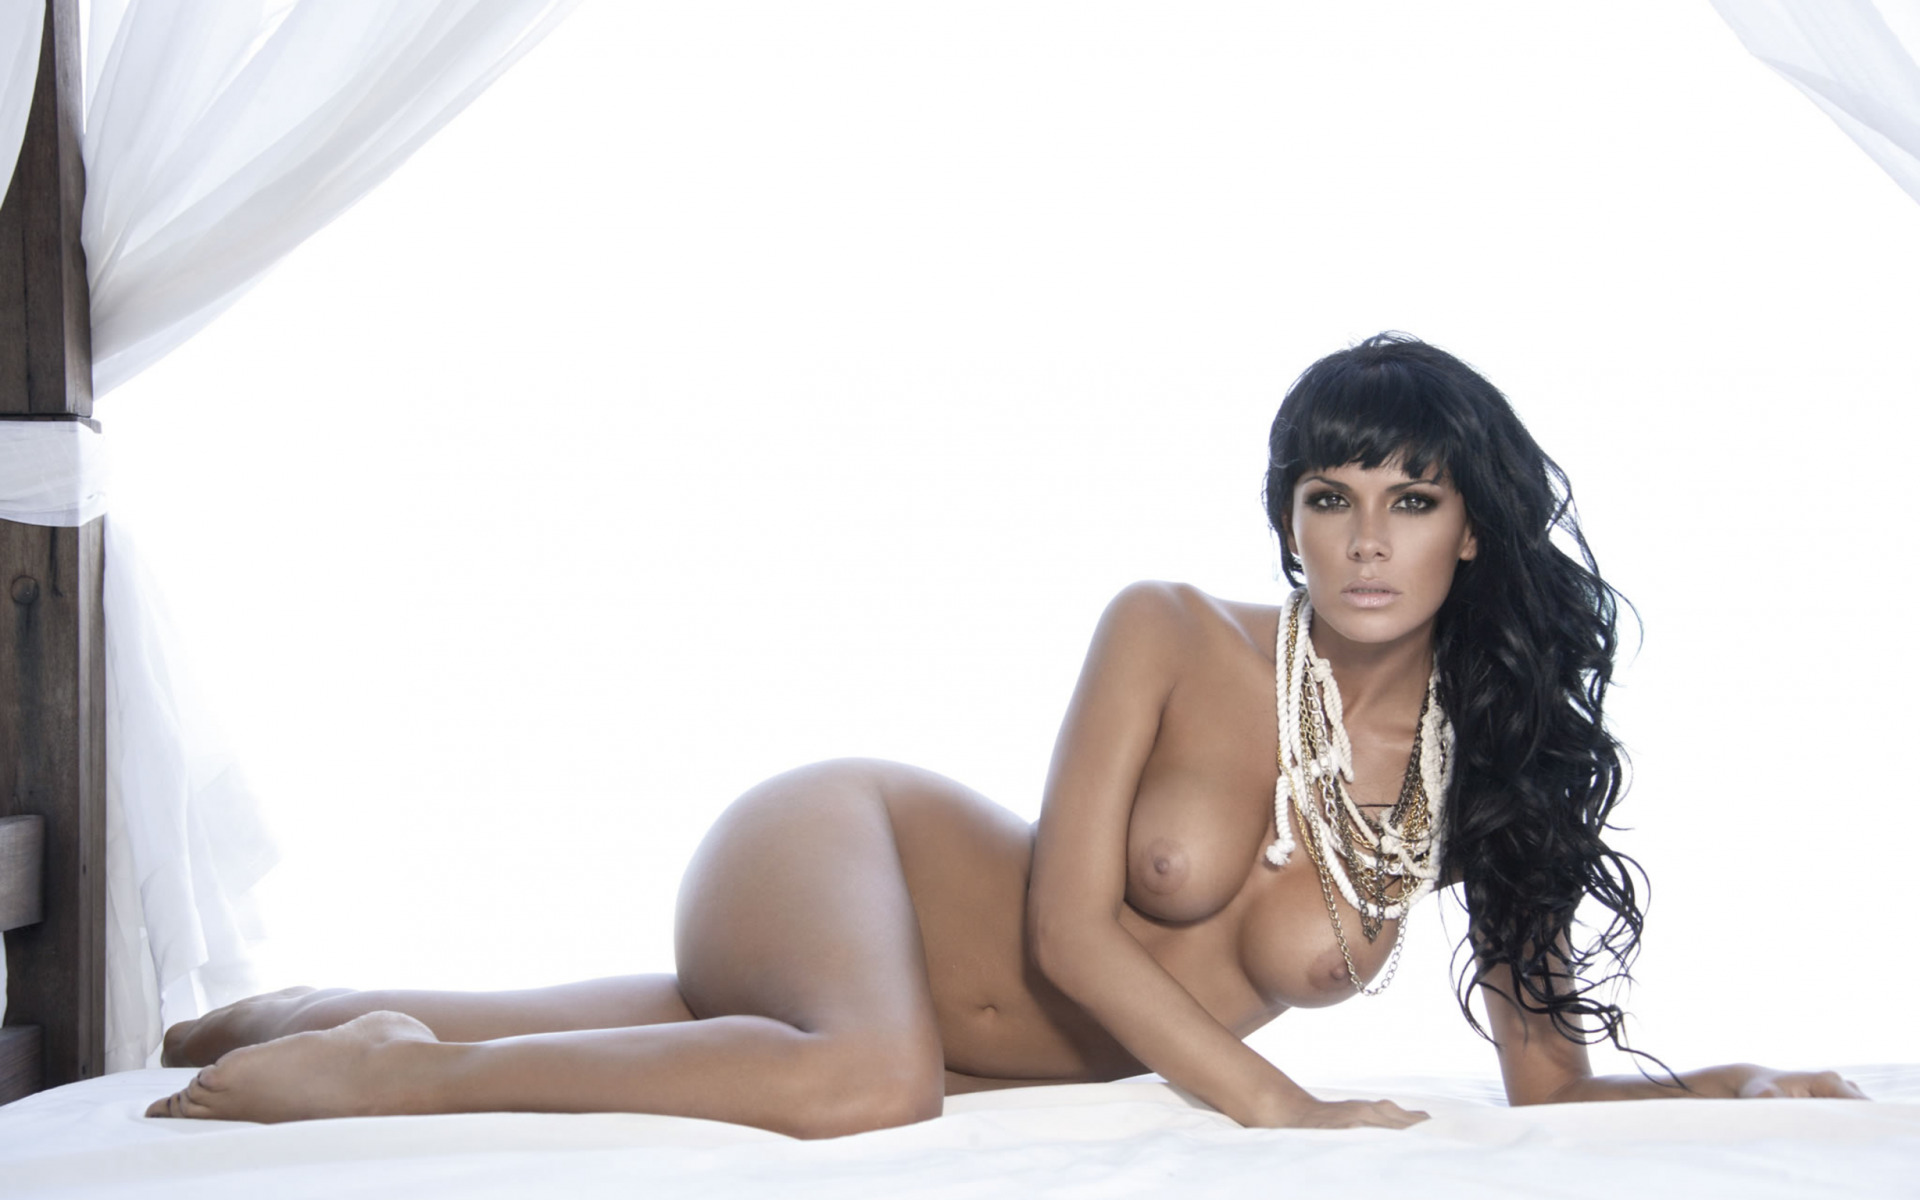 Vanessa bryant naked photo pictures